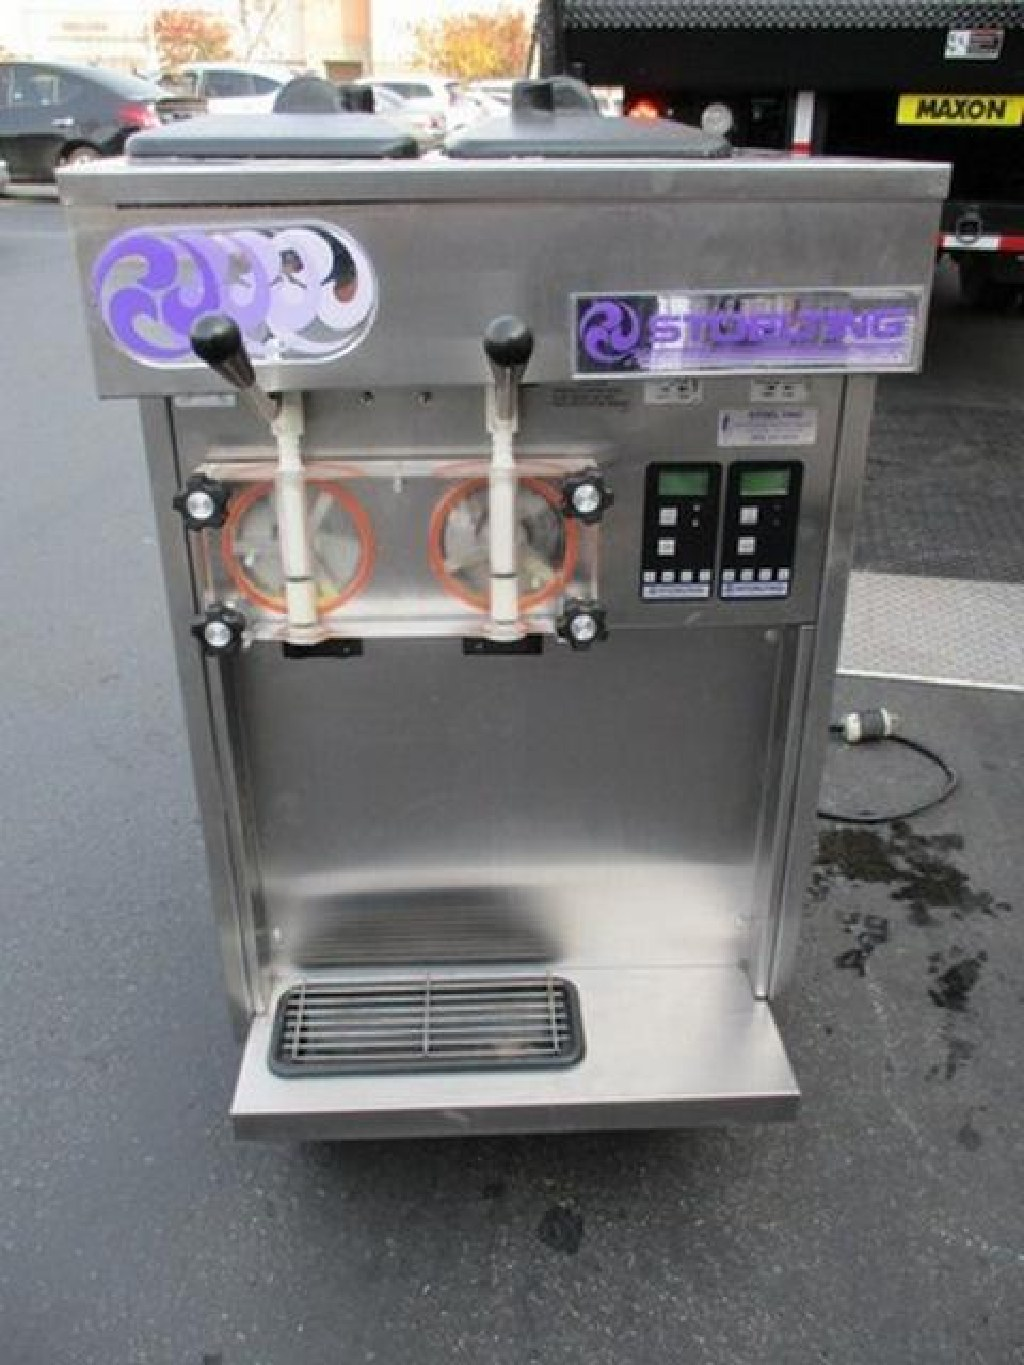 (3) 2009 F-131 Signle Phase Soft Serve Machines RTR#6111793-01